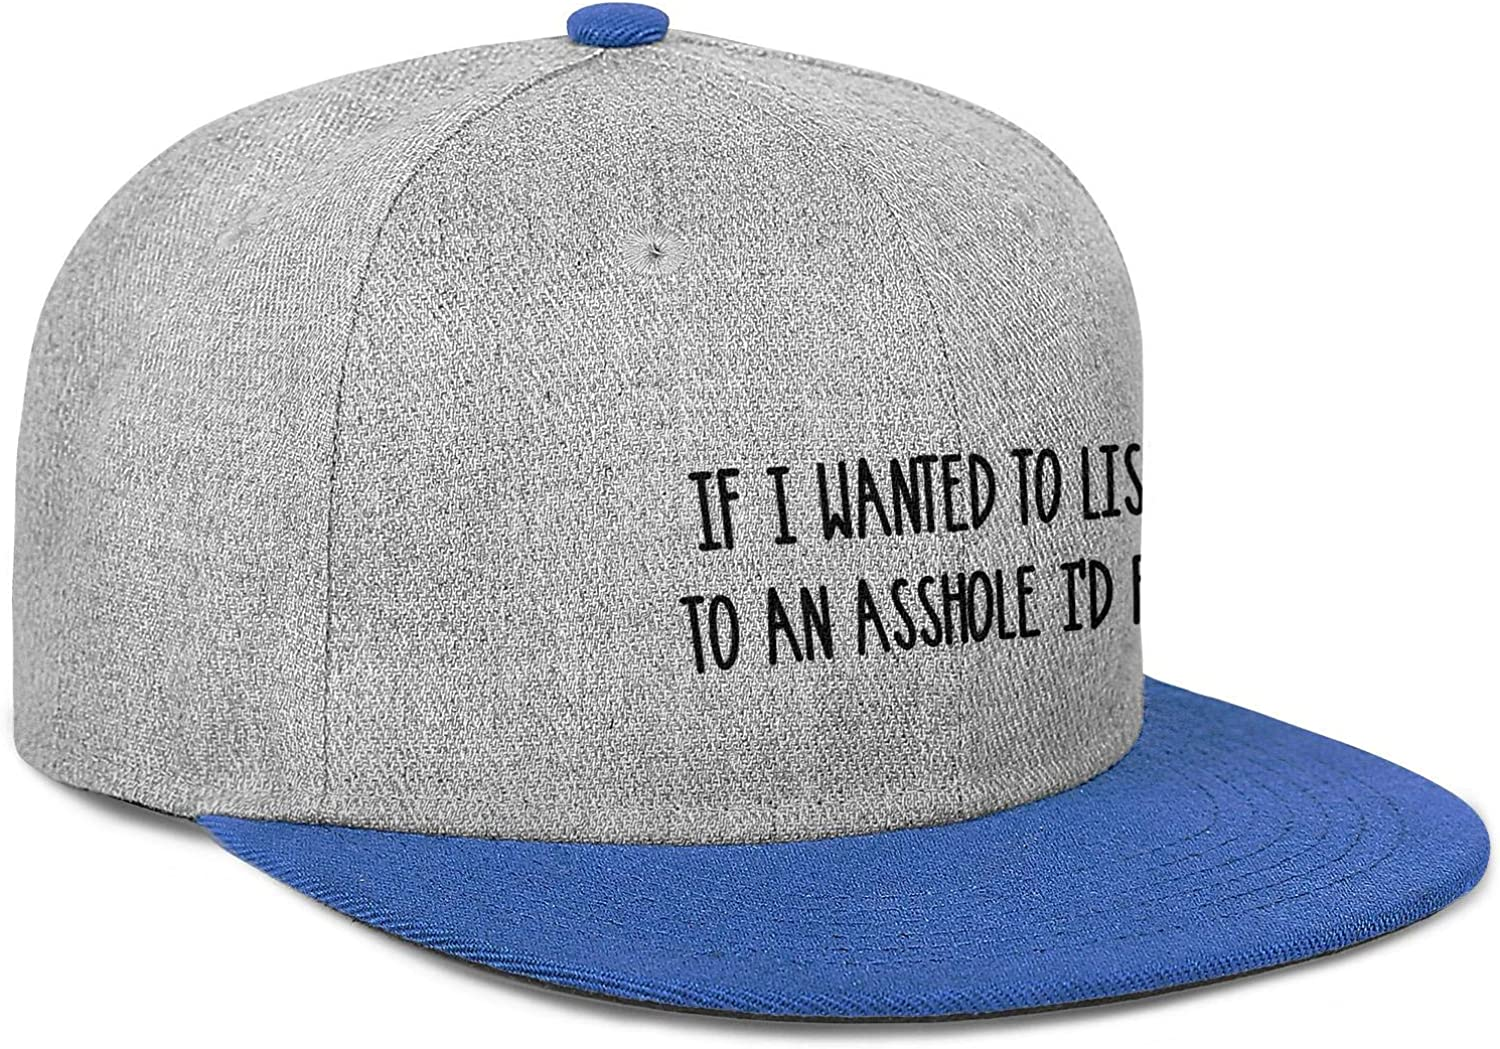 IF I Wanted to Listen to an Asshole Id Fart Mens Women Wool Baseball Cap Adjustable Snapback Beach Hat